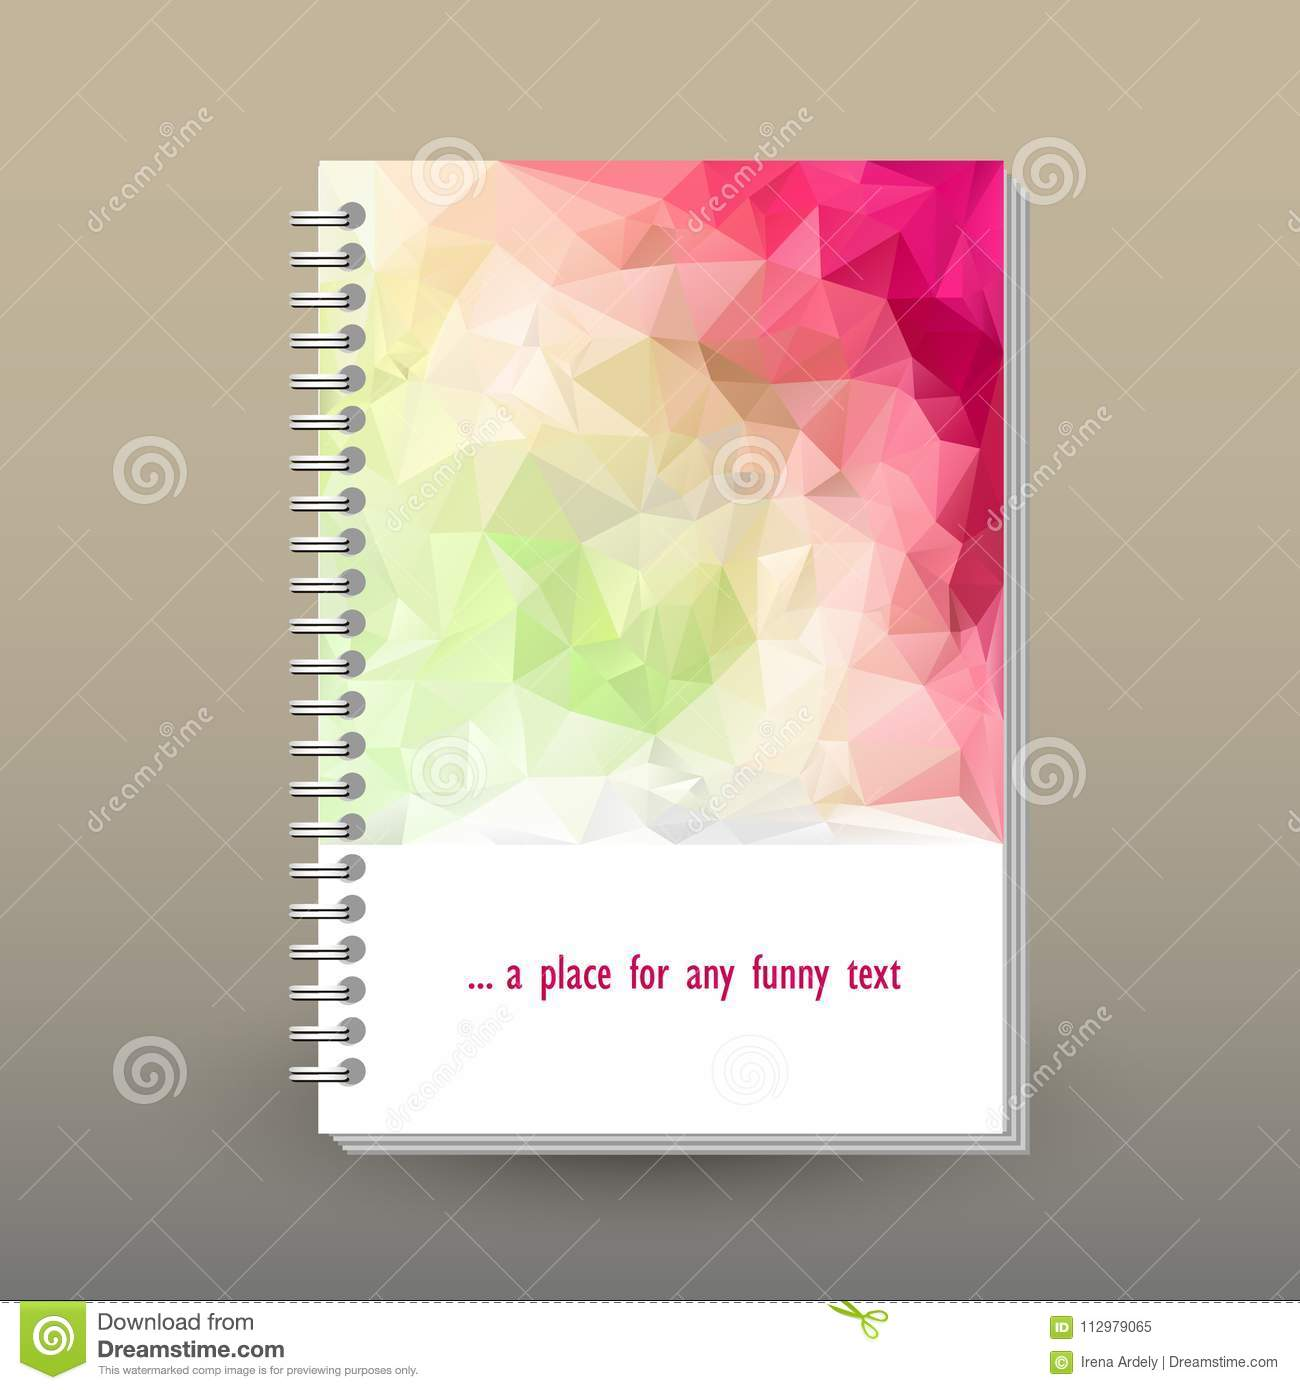 Vector cover of diary with ring spiral binder - format A5 - layout brochure concept - spring fresh colored with light